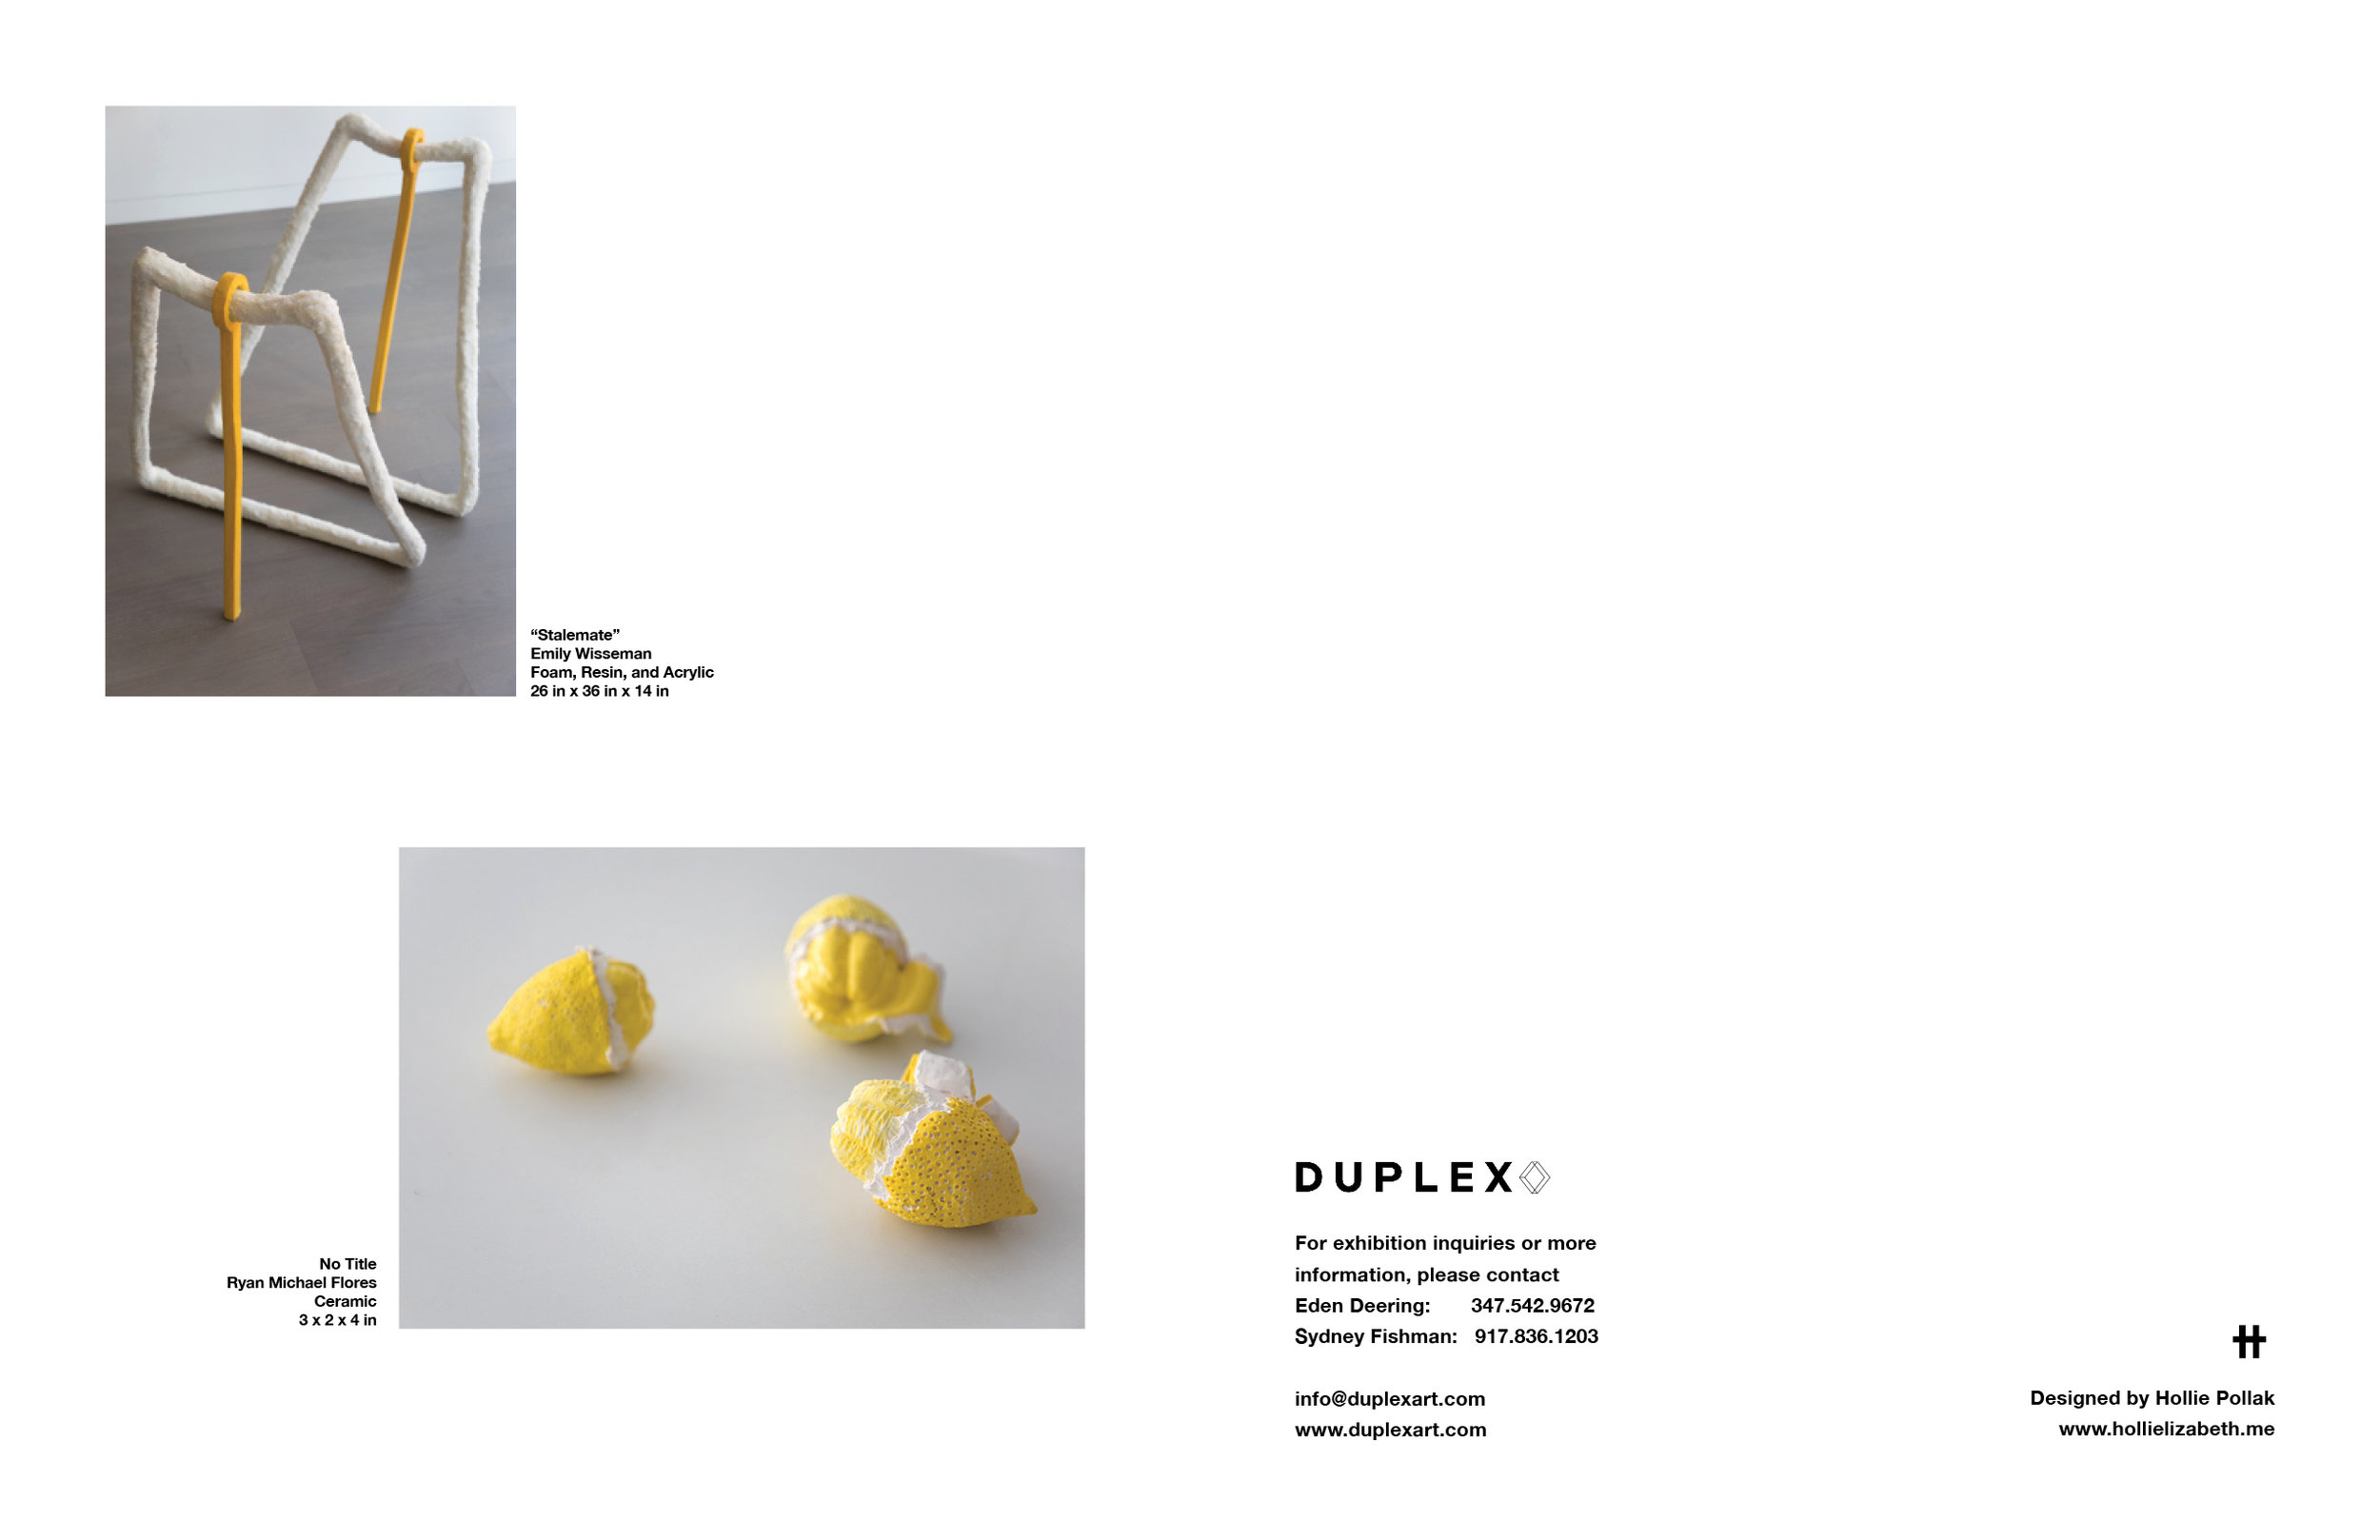 Book_Duplex_pages8.jpg